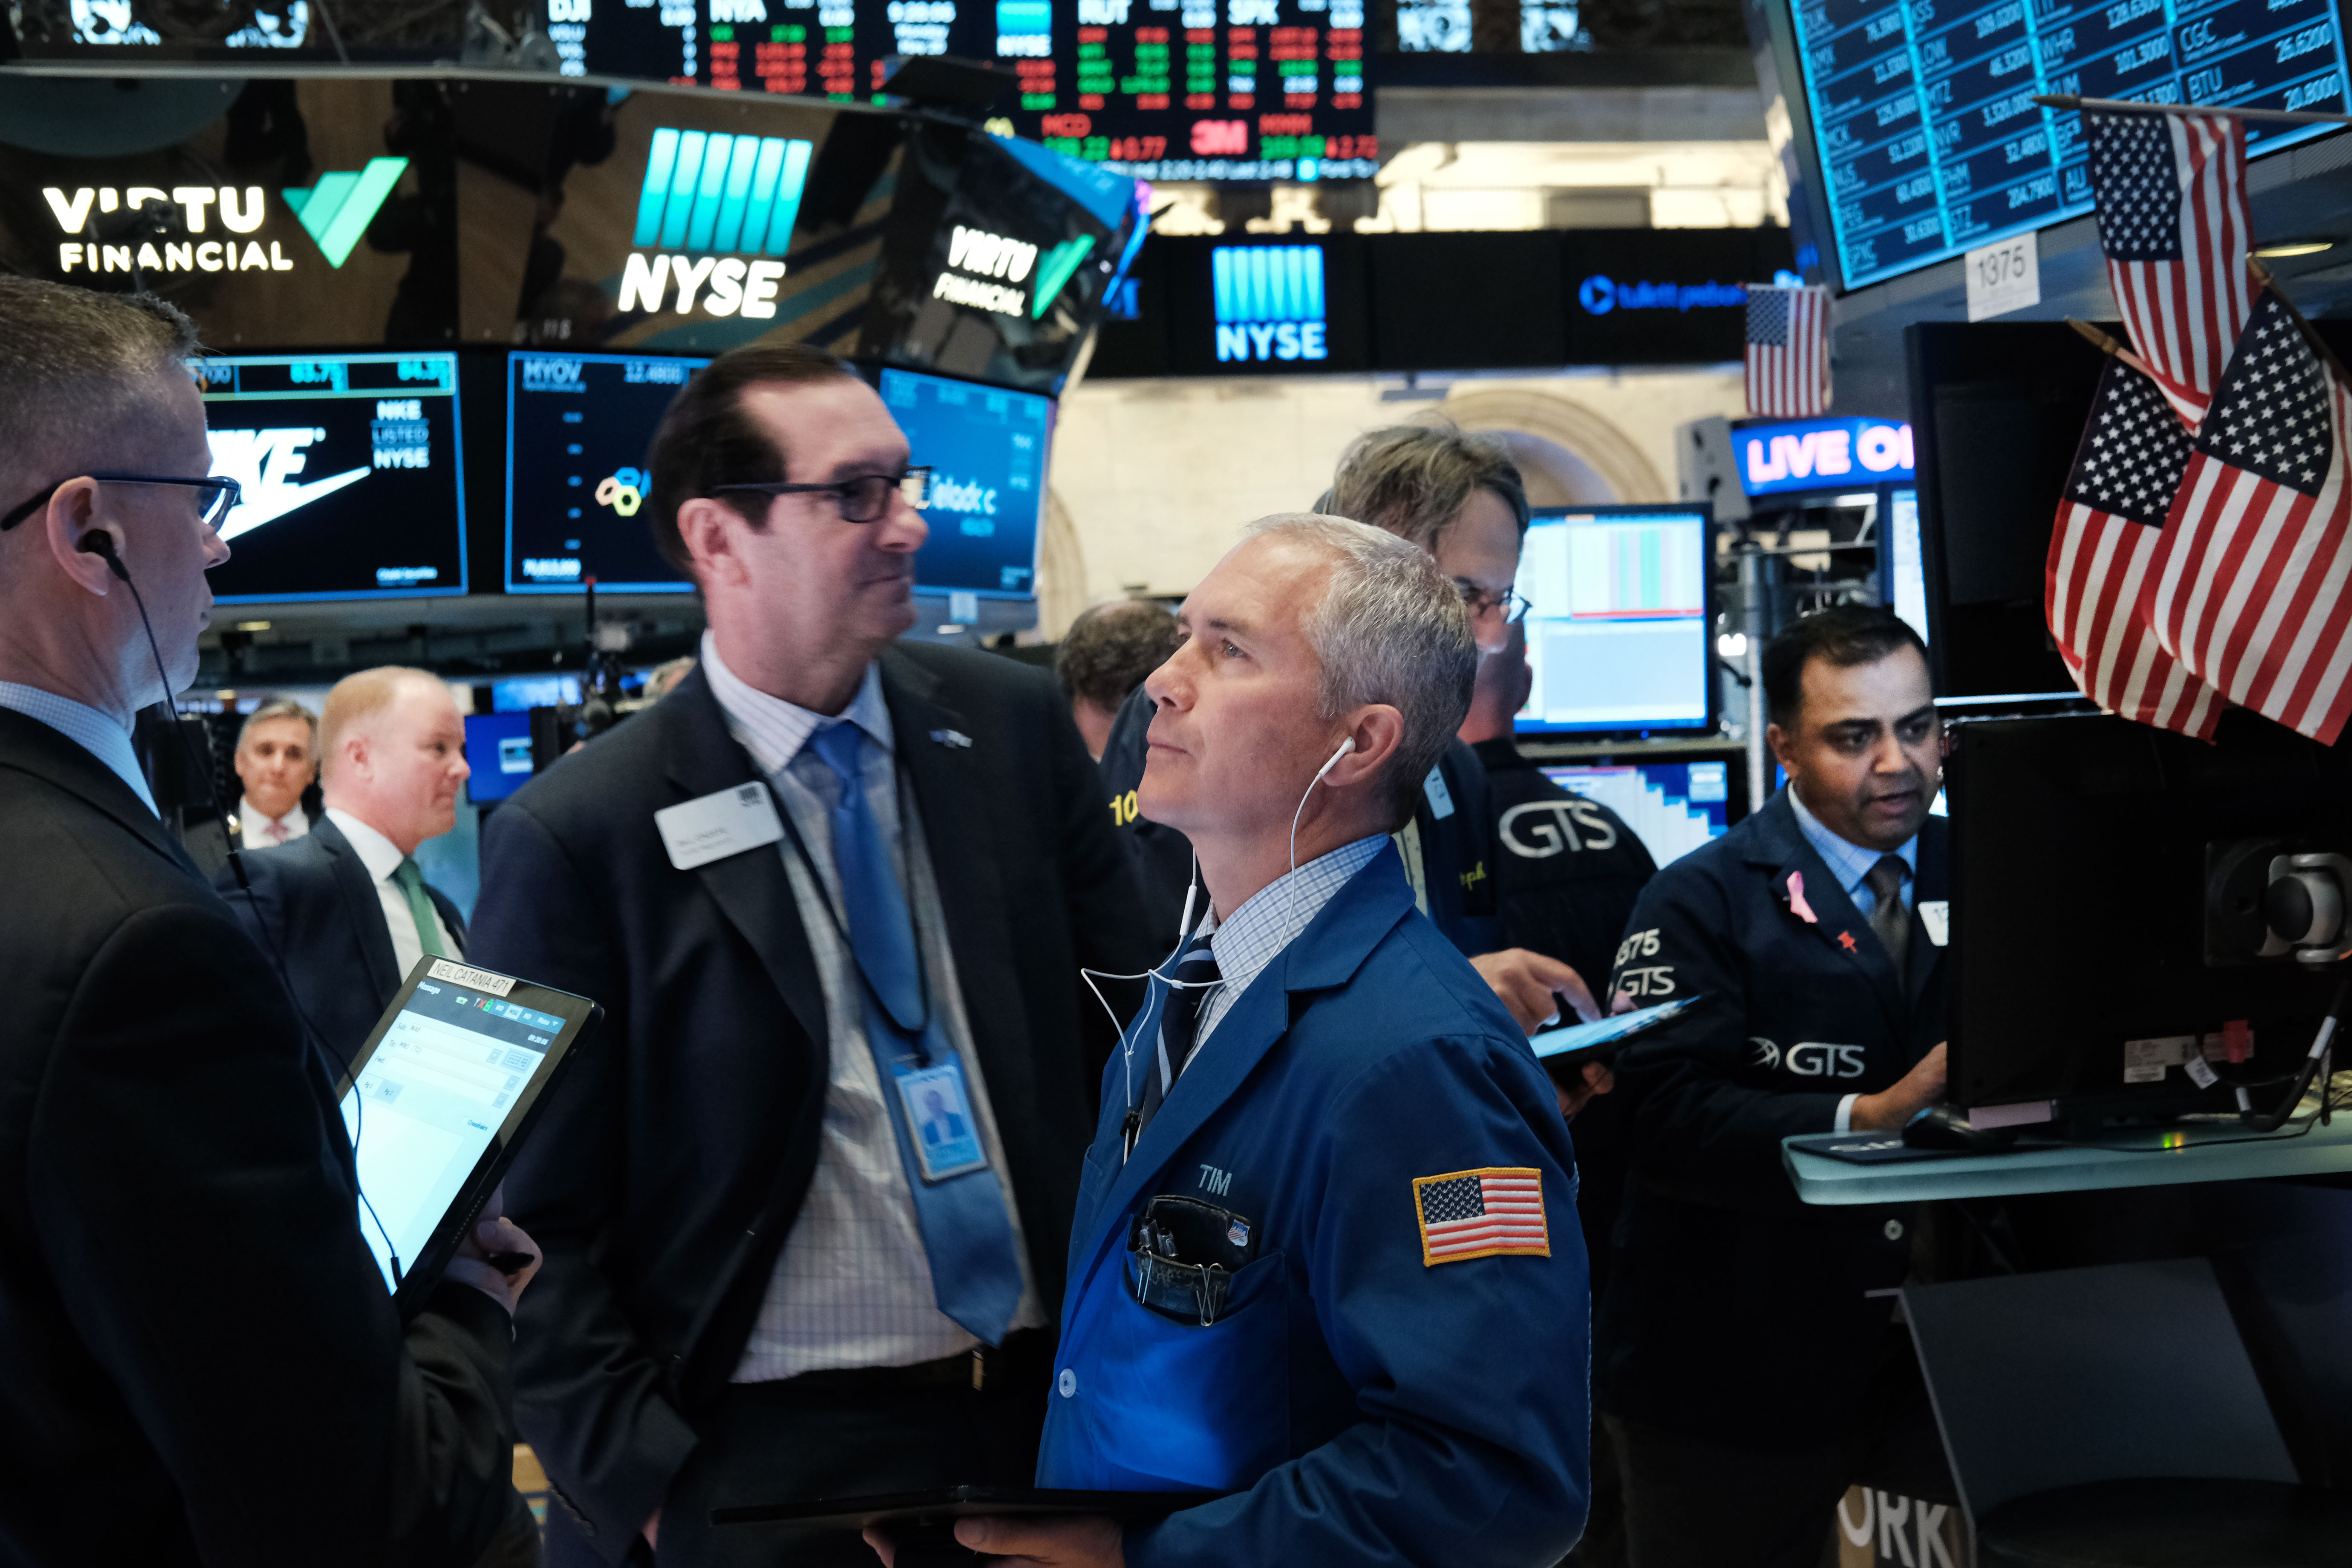 Markets Open Down As Fears Continue Over Trade War With China